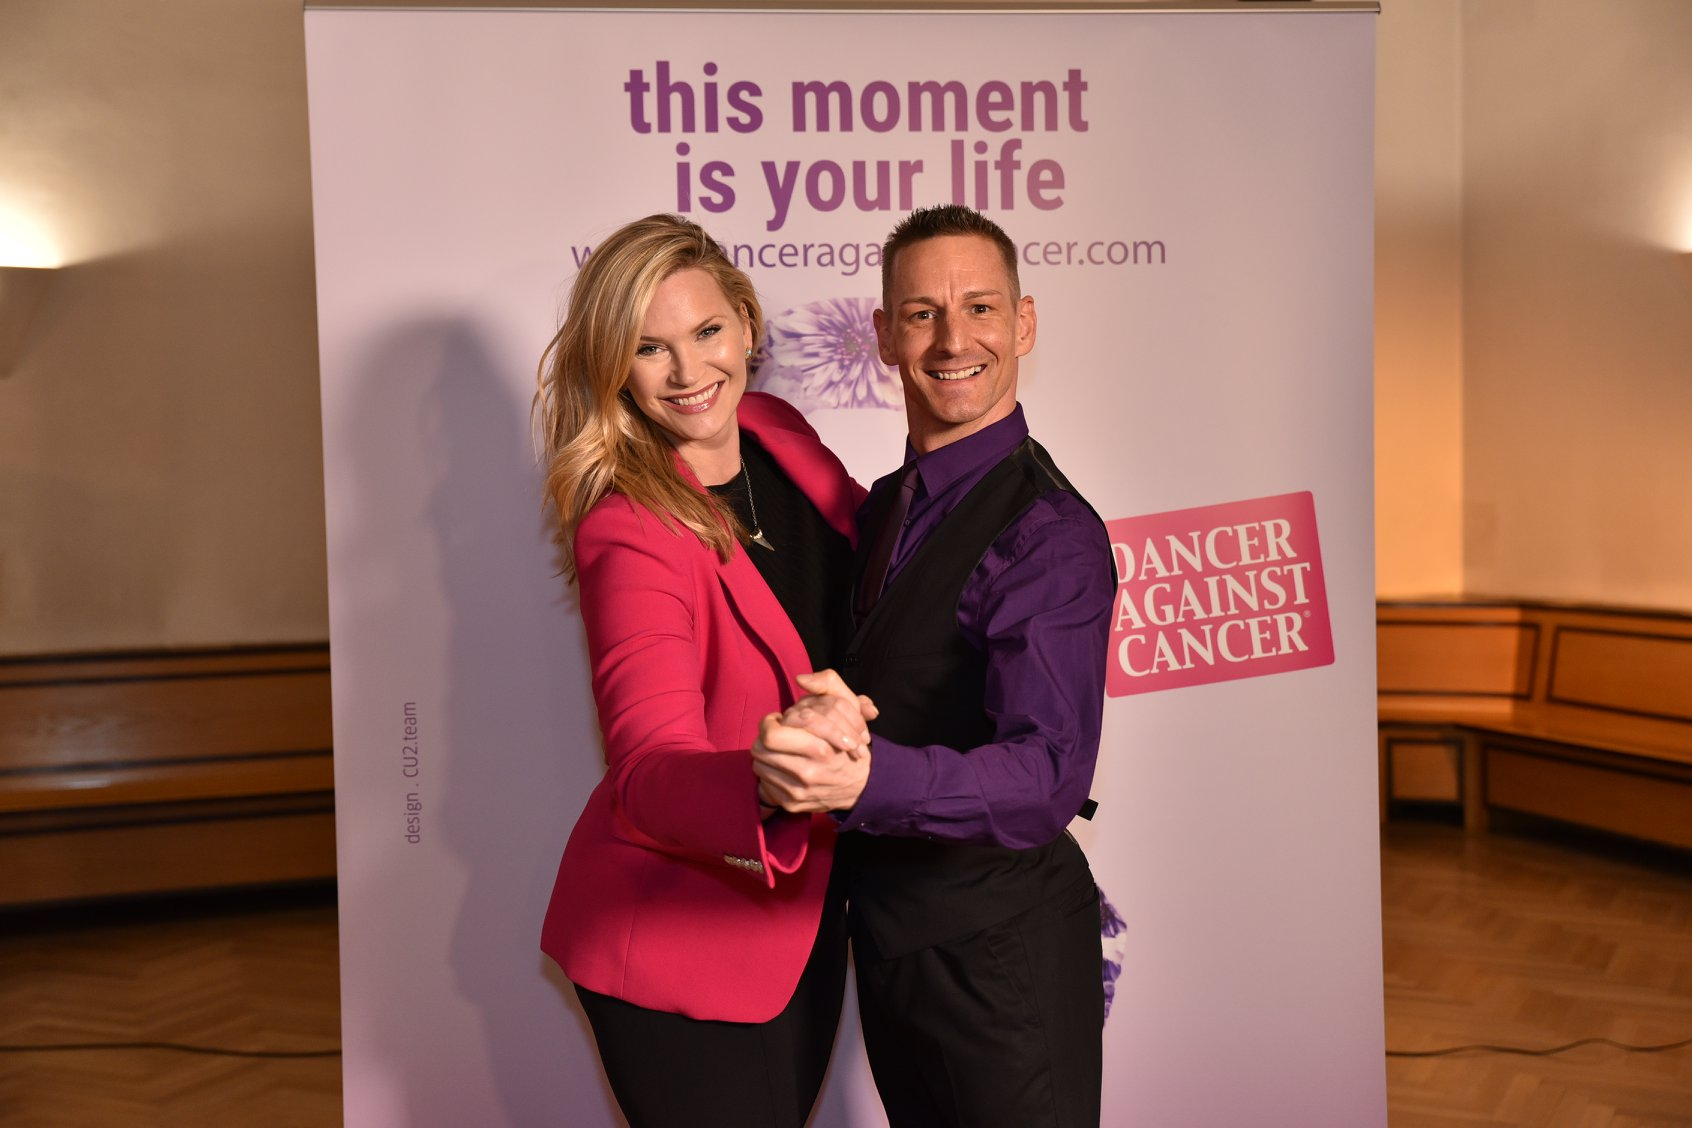 Dancer Against Cancer 2020 – Natasha Henstridge